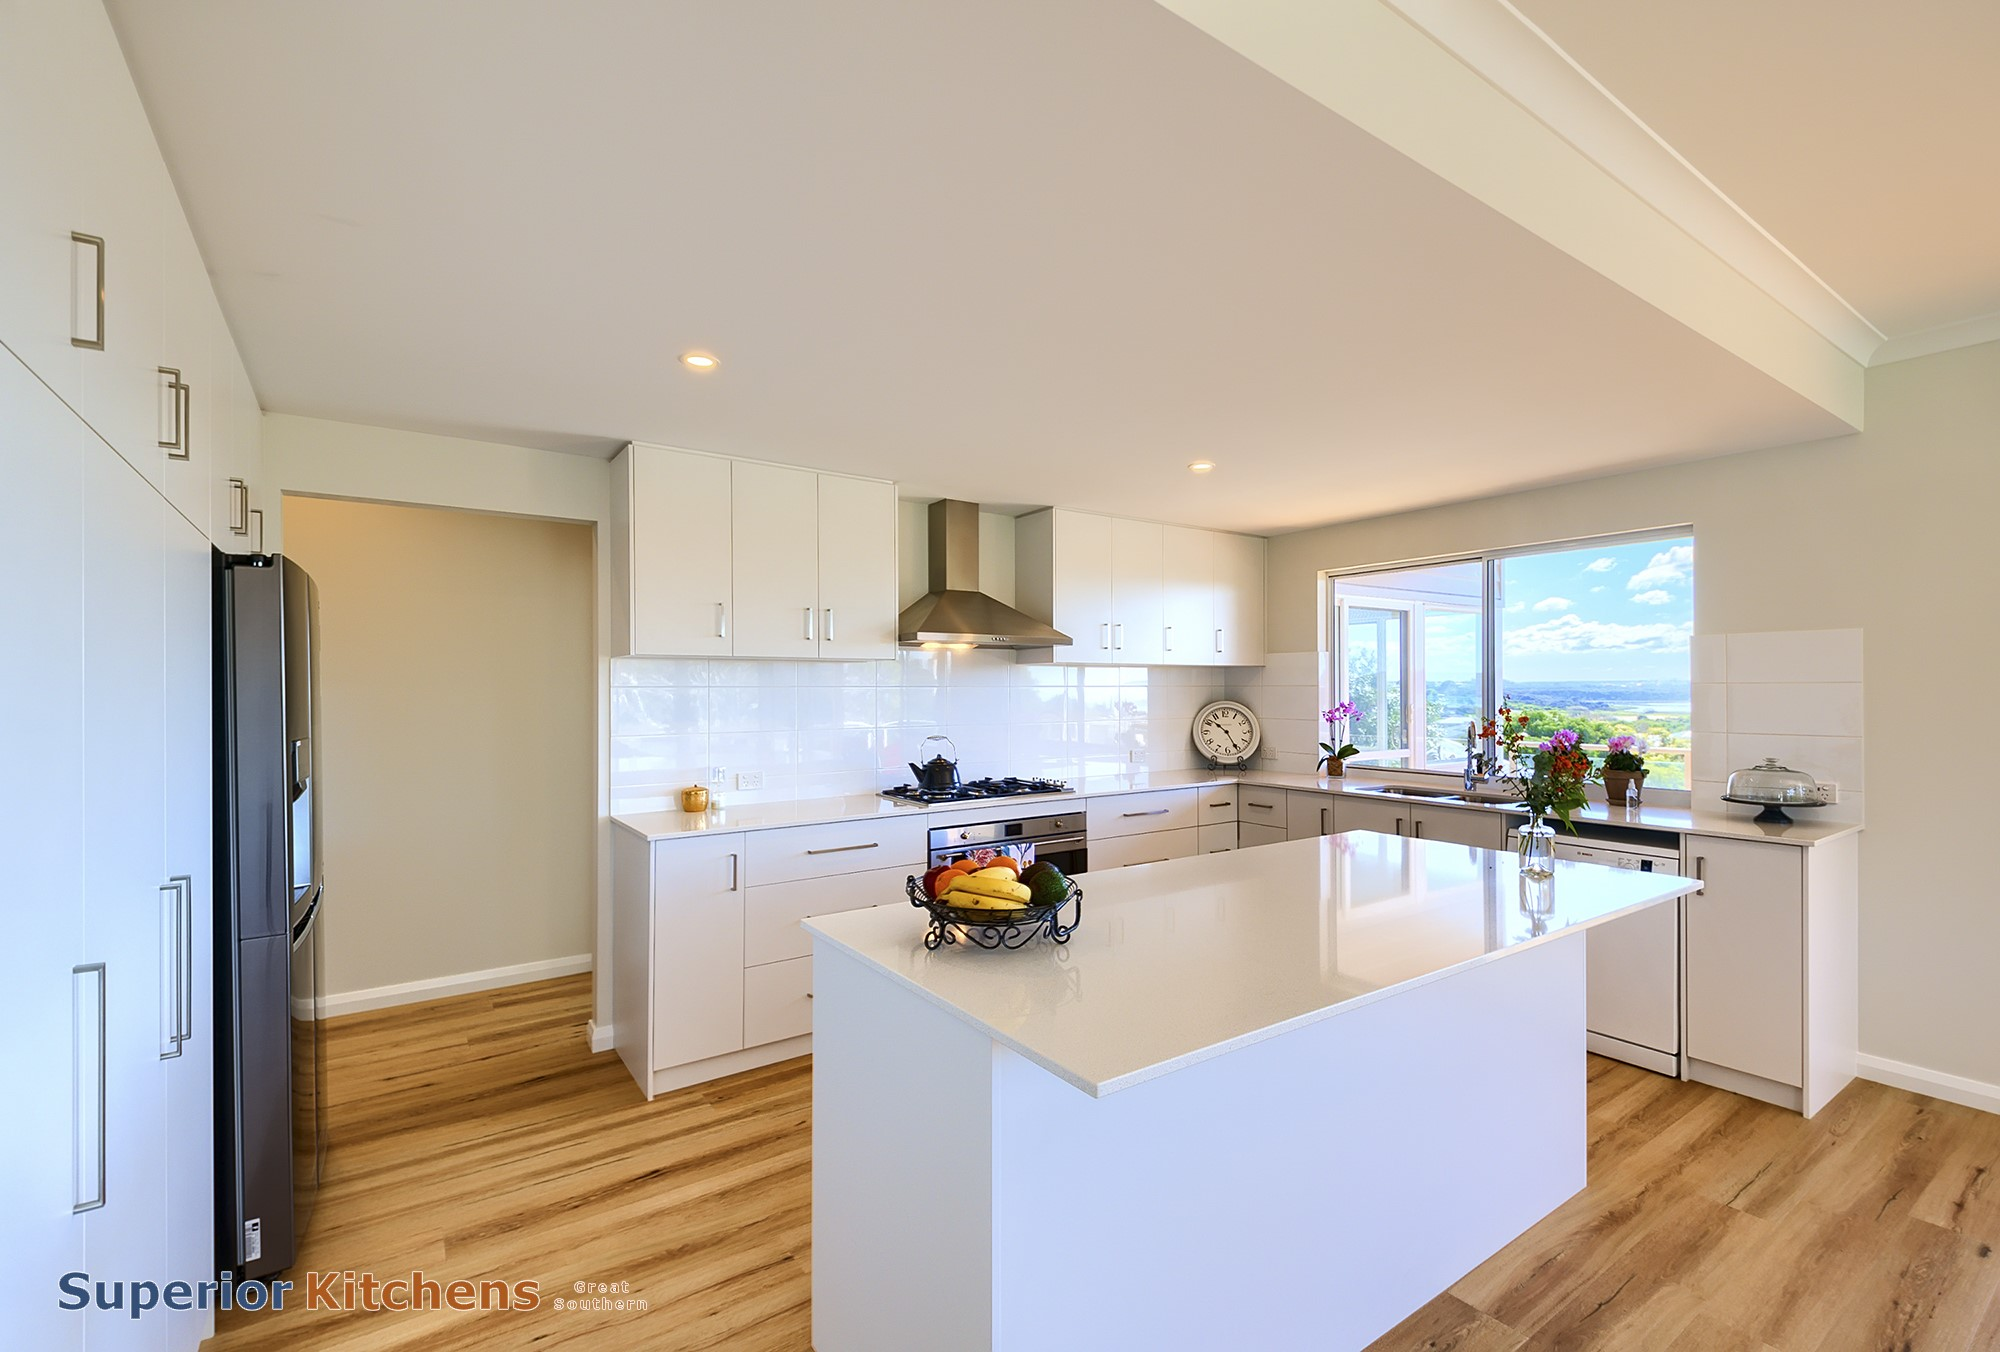 About Superior Kitchens Great Southern Albany Wa